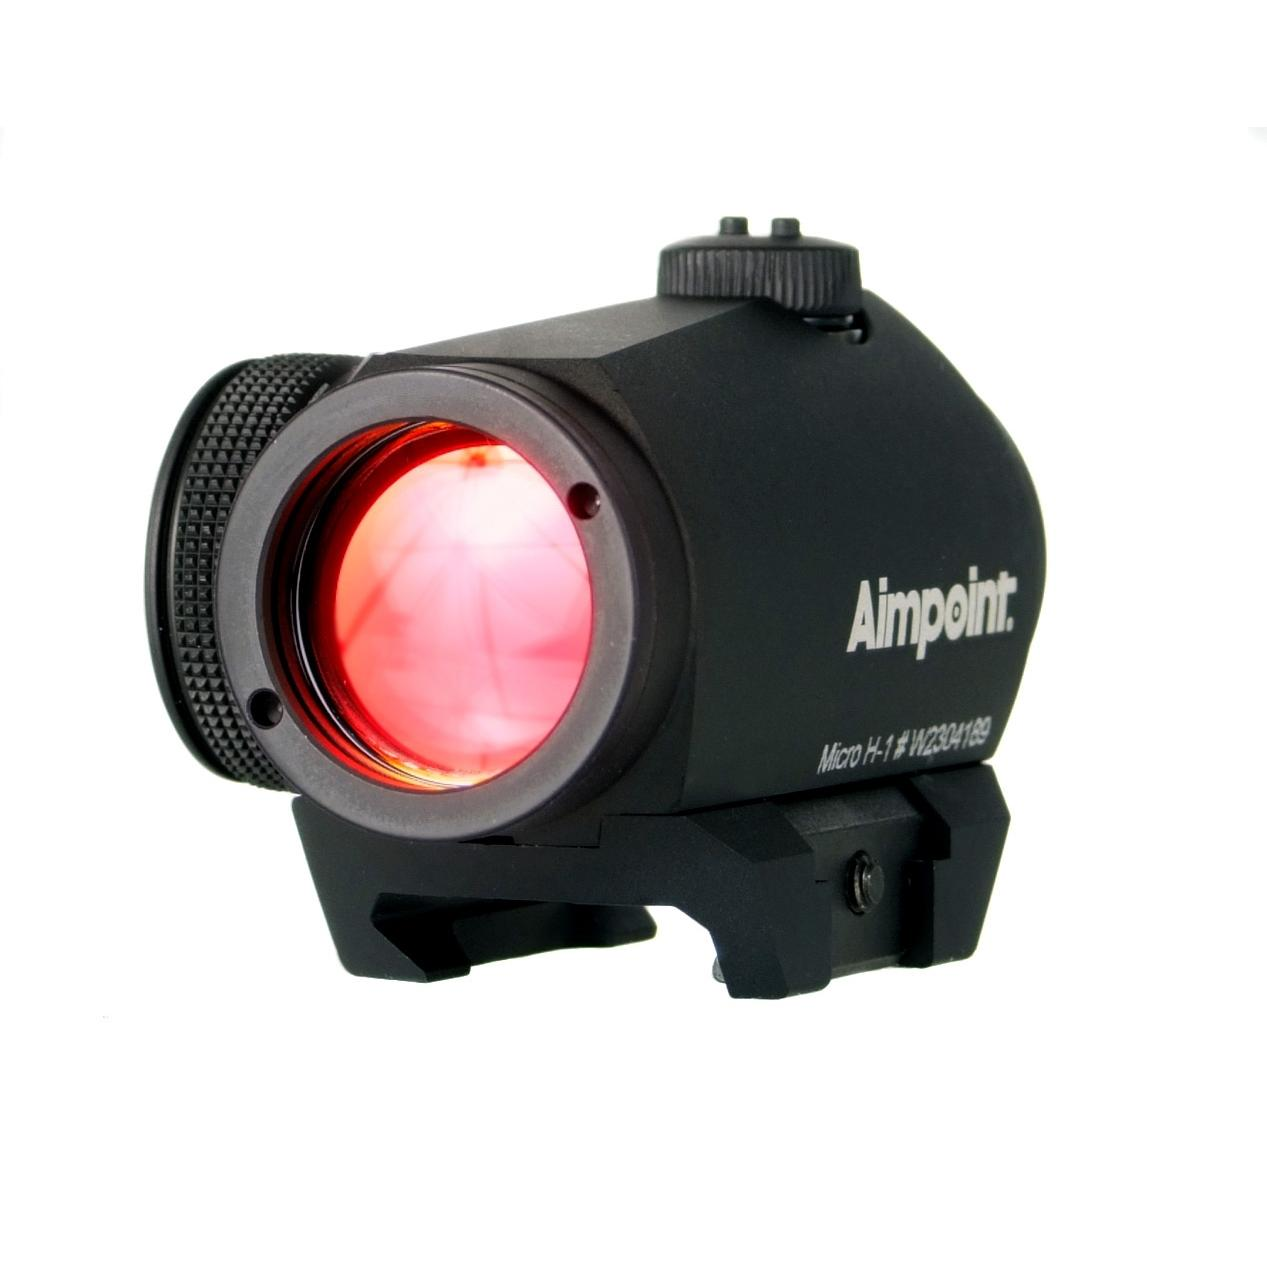 Aimpoint Micro H-1 Red Dot 4 Moa Sight - Black - 11910